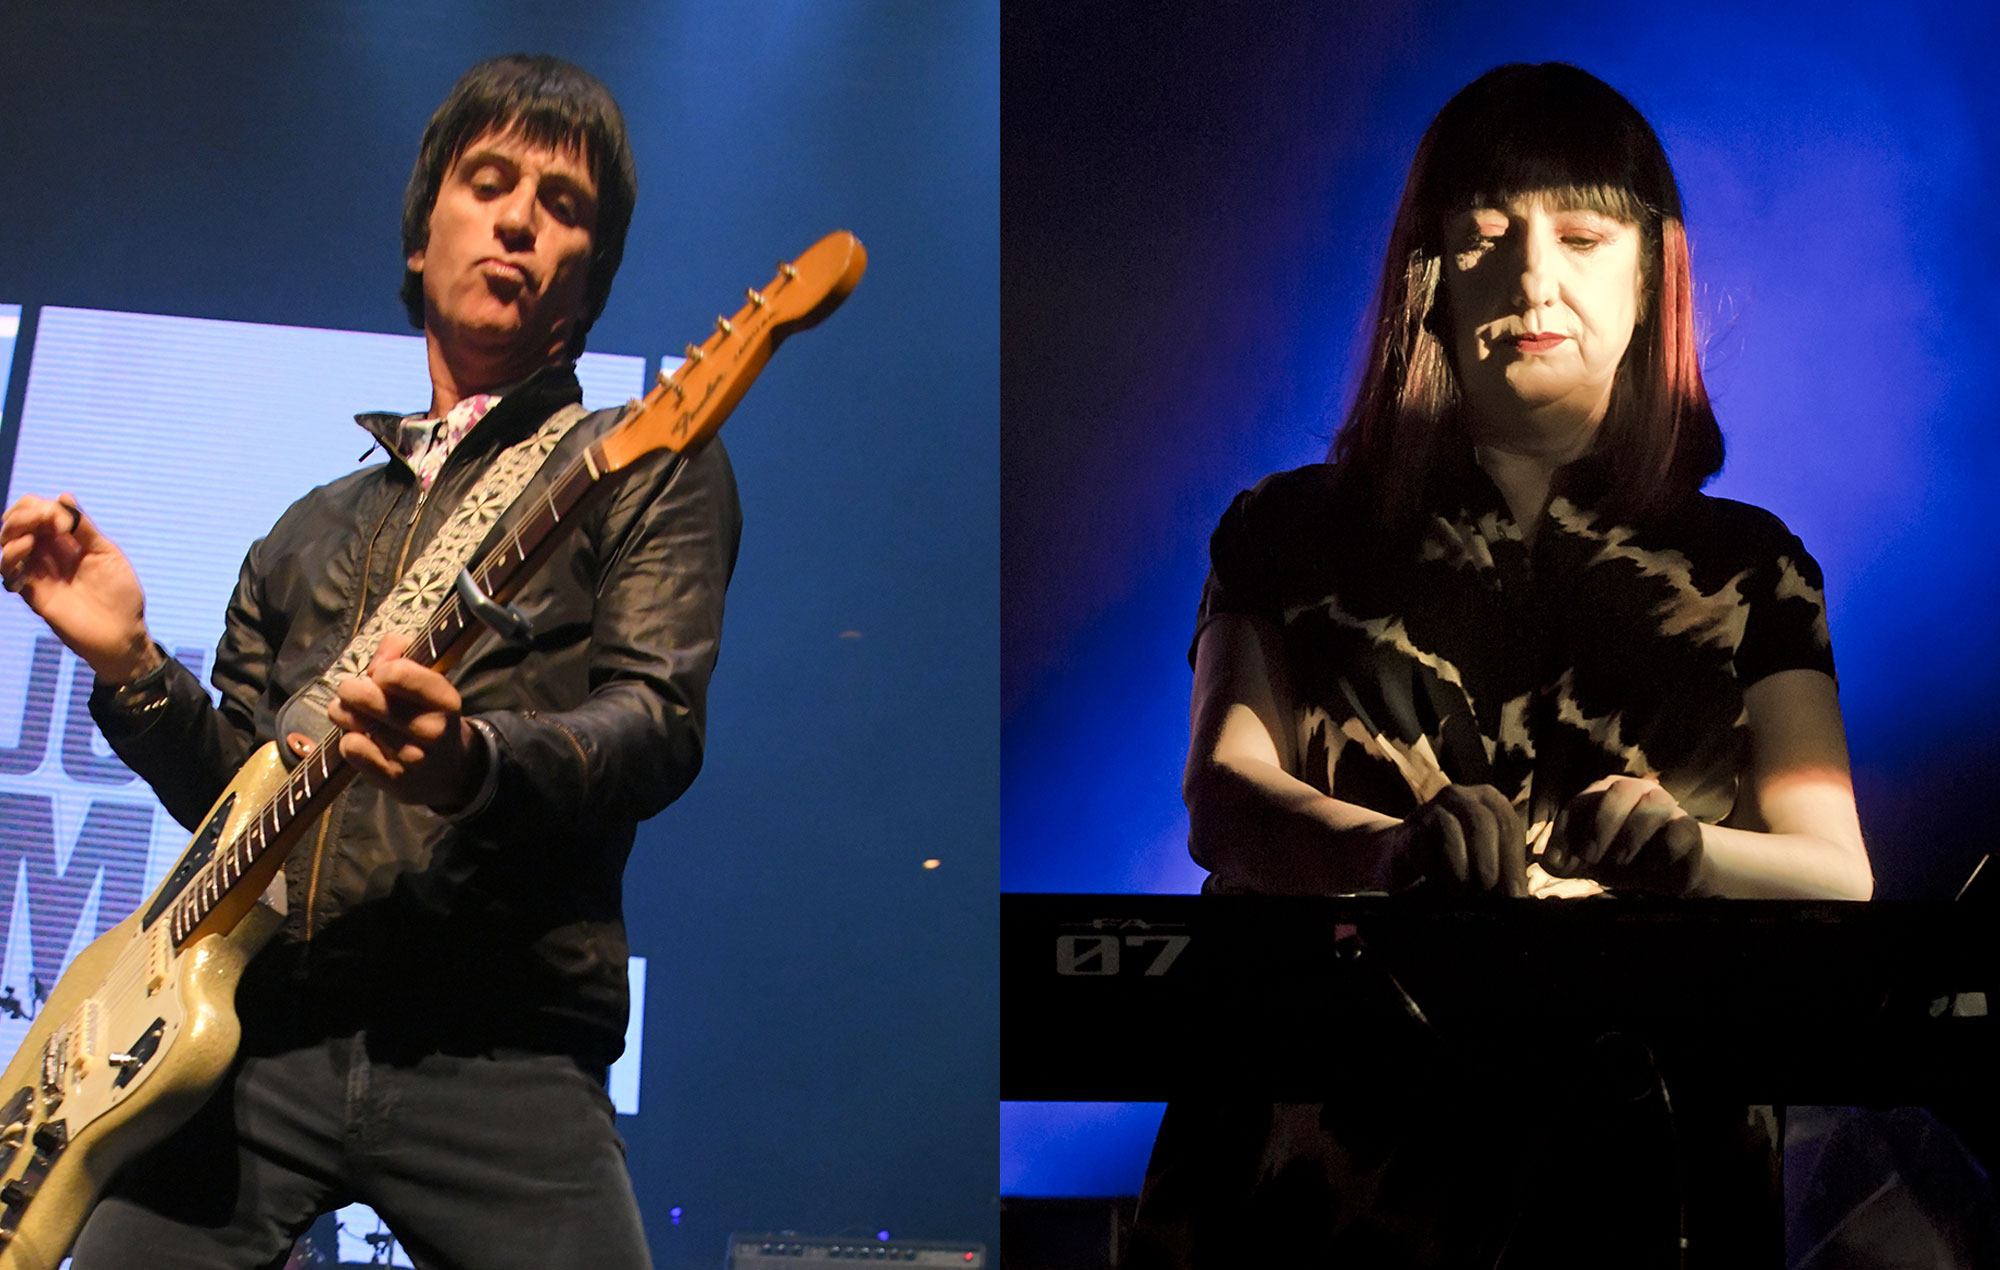 Johnny Marr says impact of Gillian Gilbert joining New Order 'overlooked'